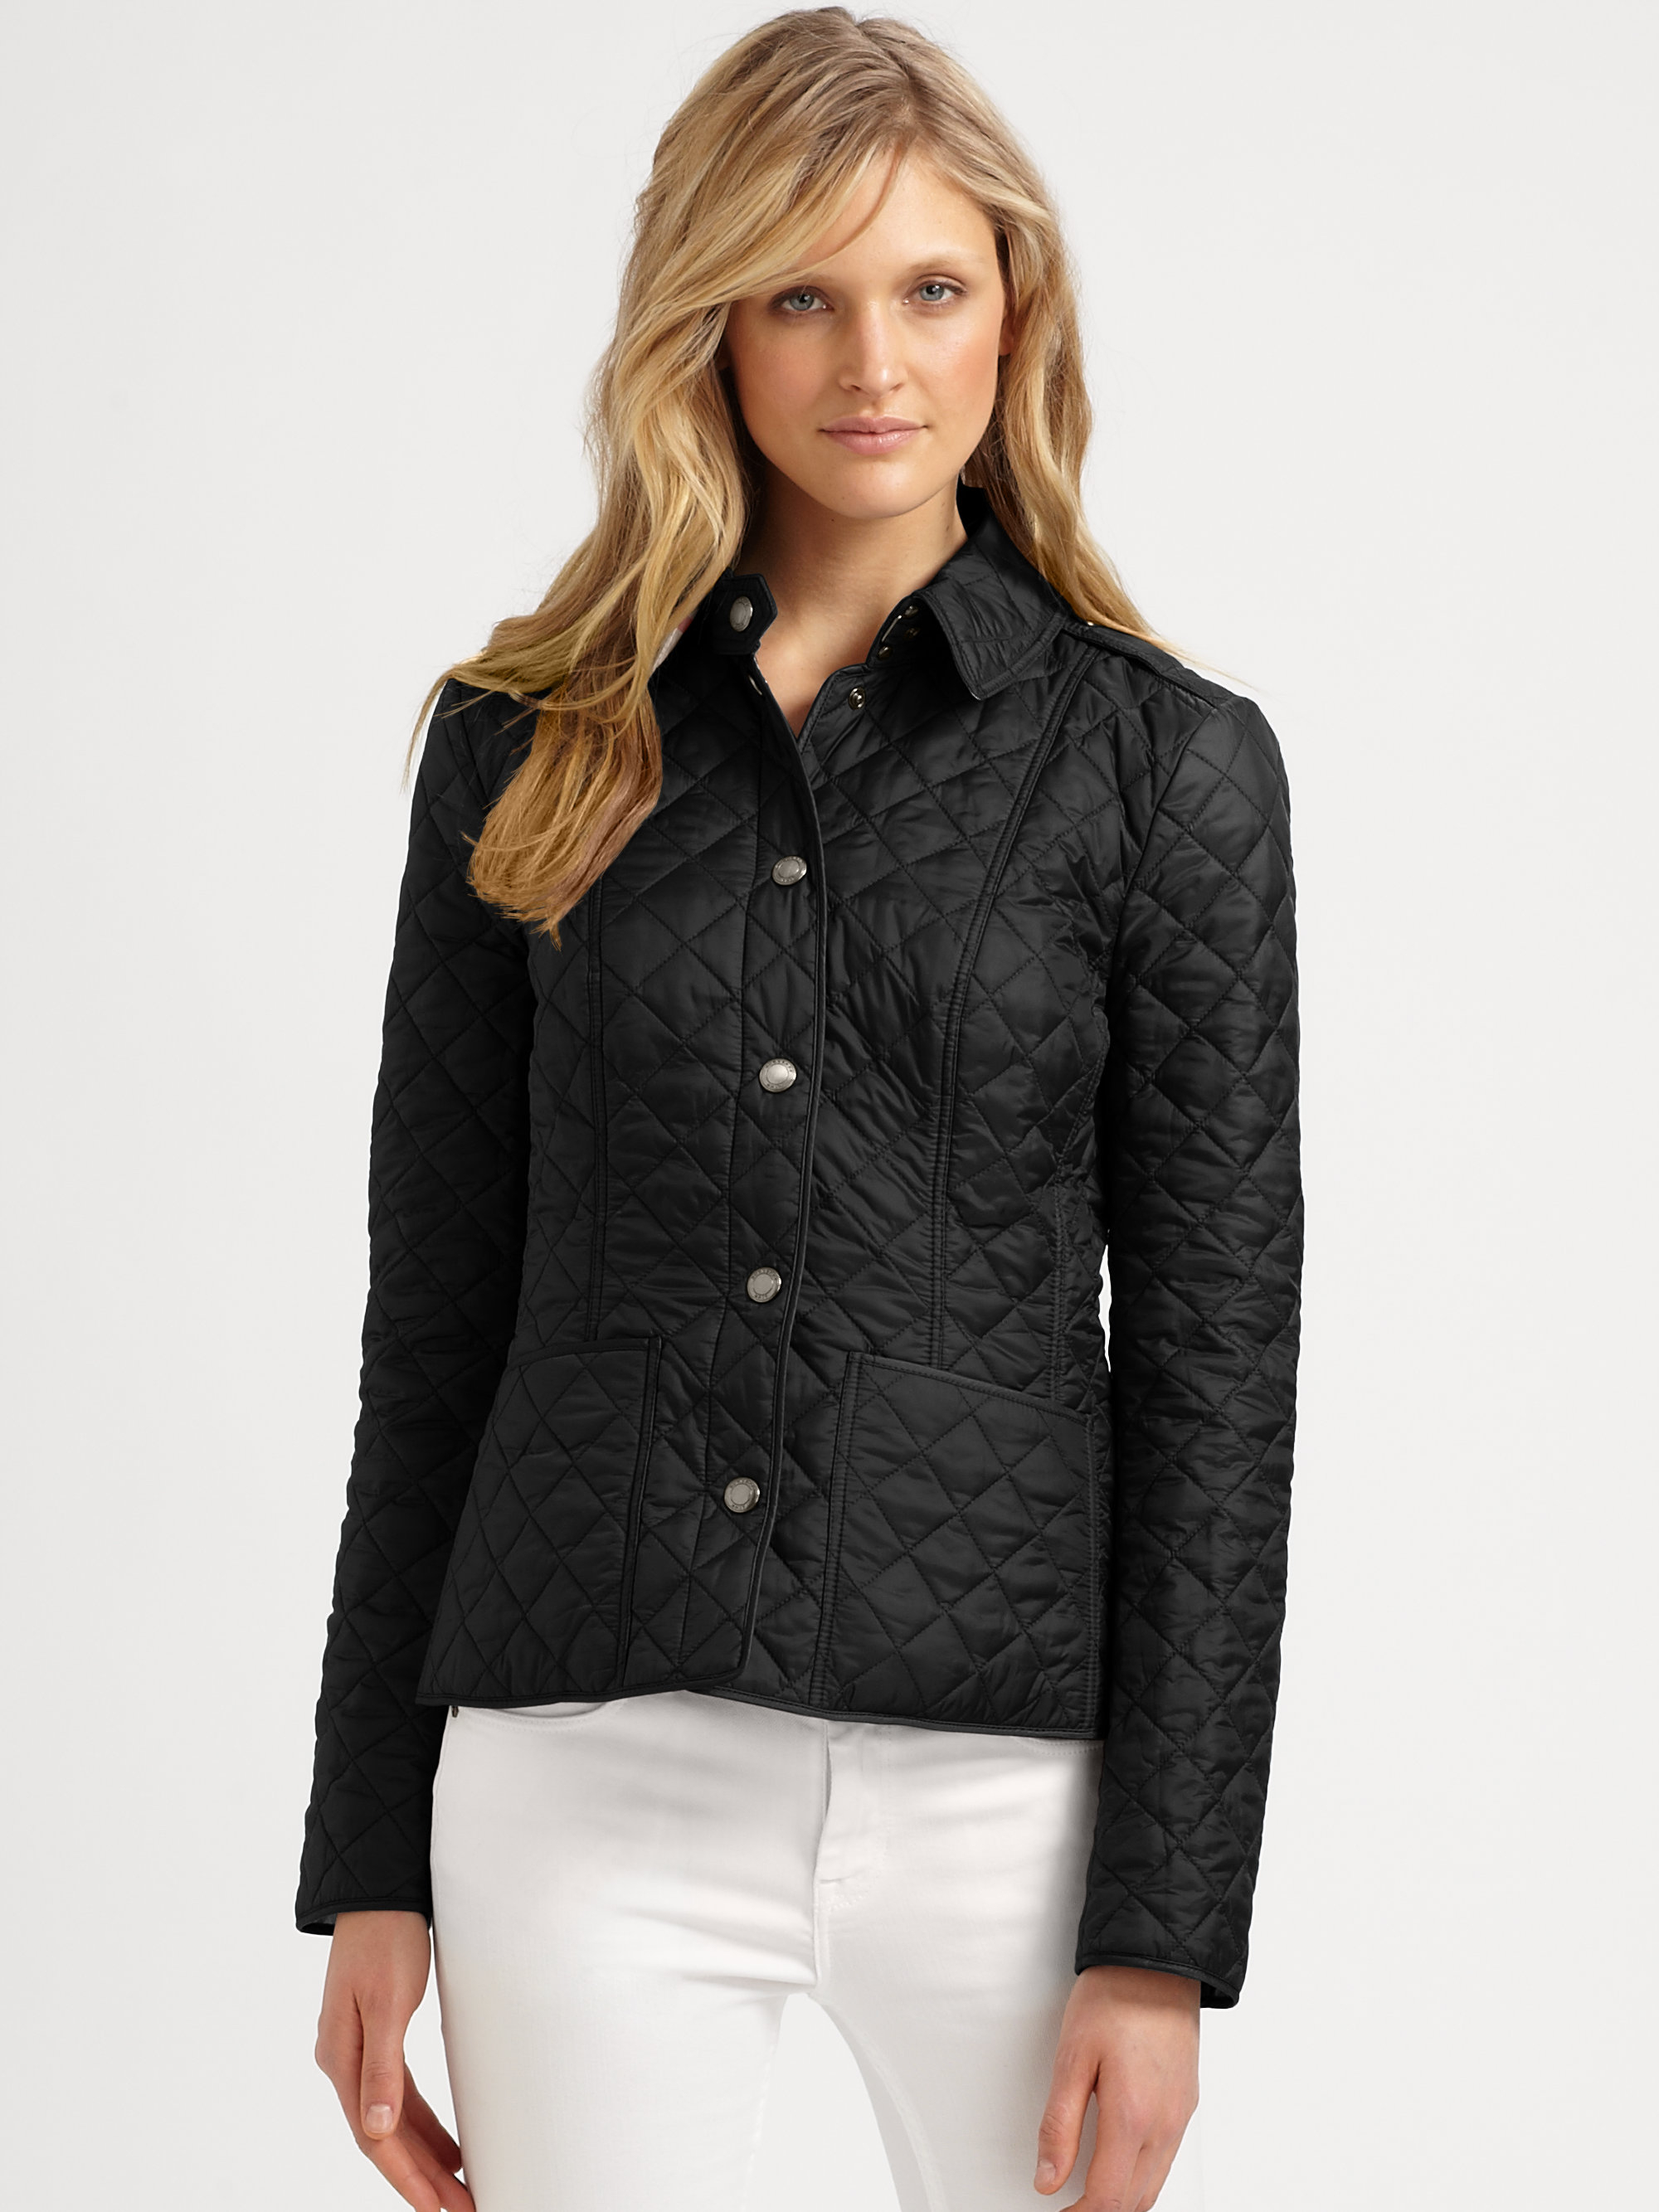 Burberry Kencott Quilted Jacket in Black | Lyst : lightweight quilted coat - Adamdwight.com